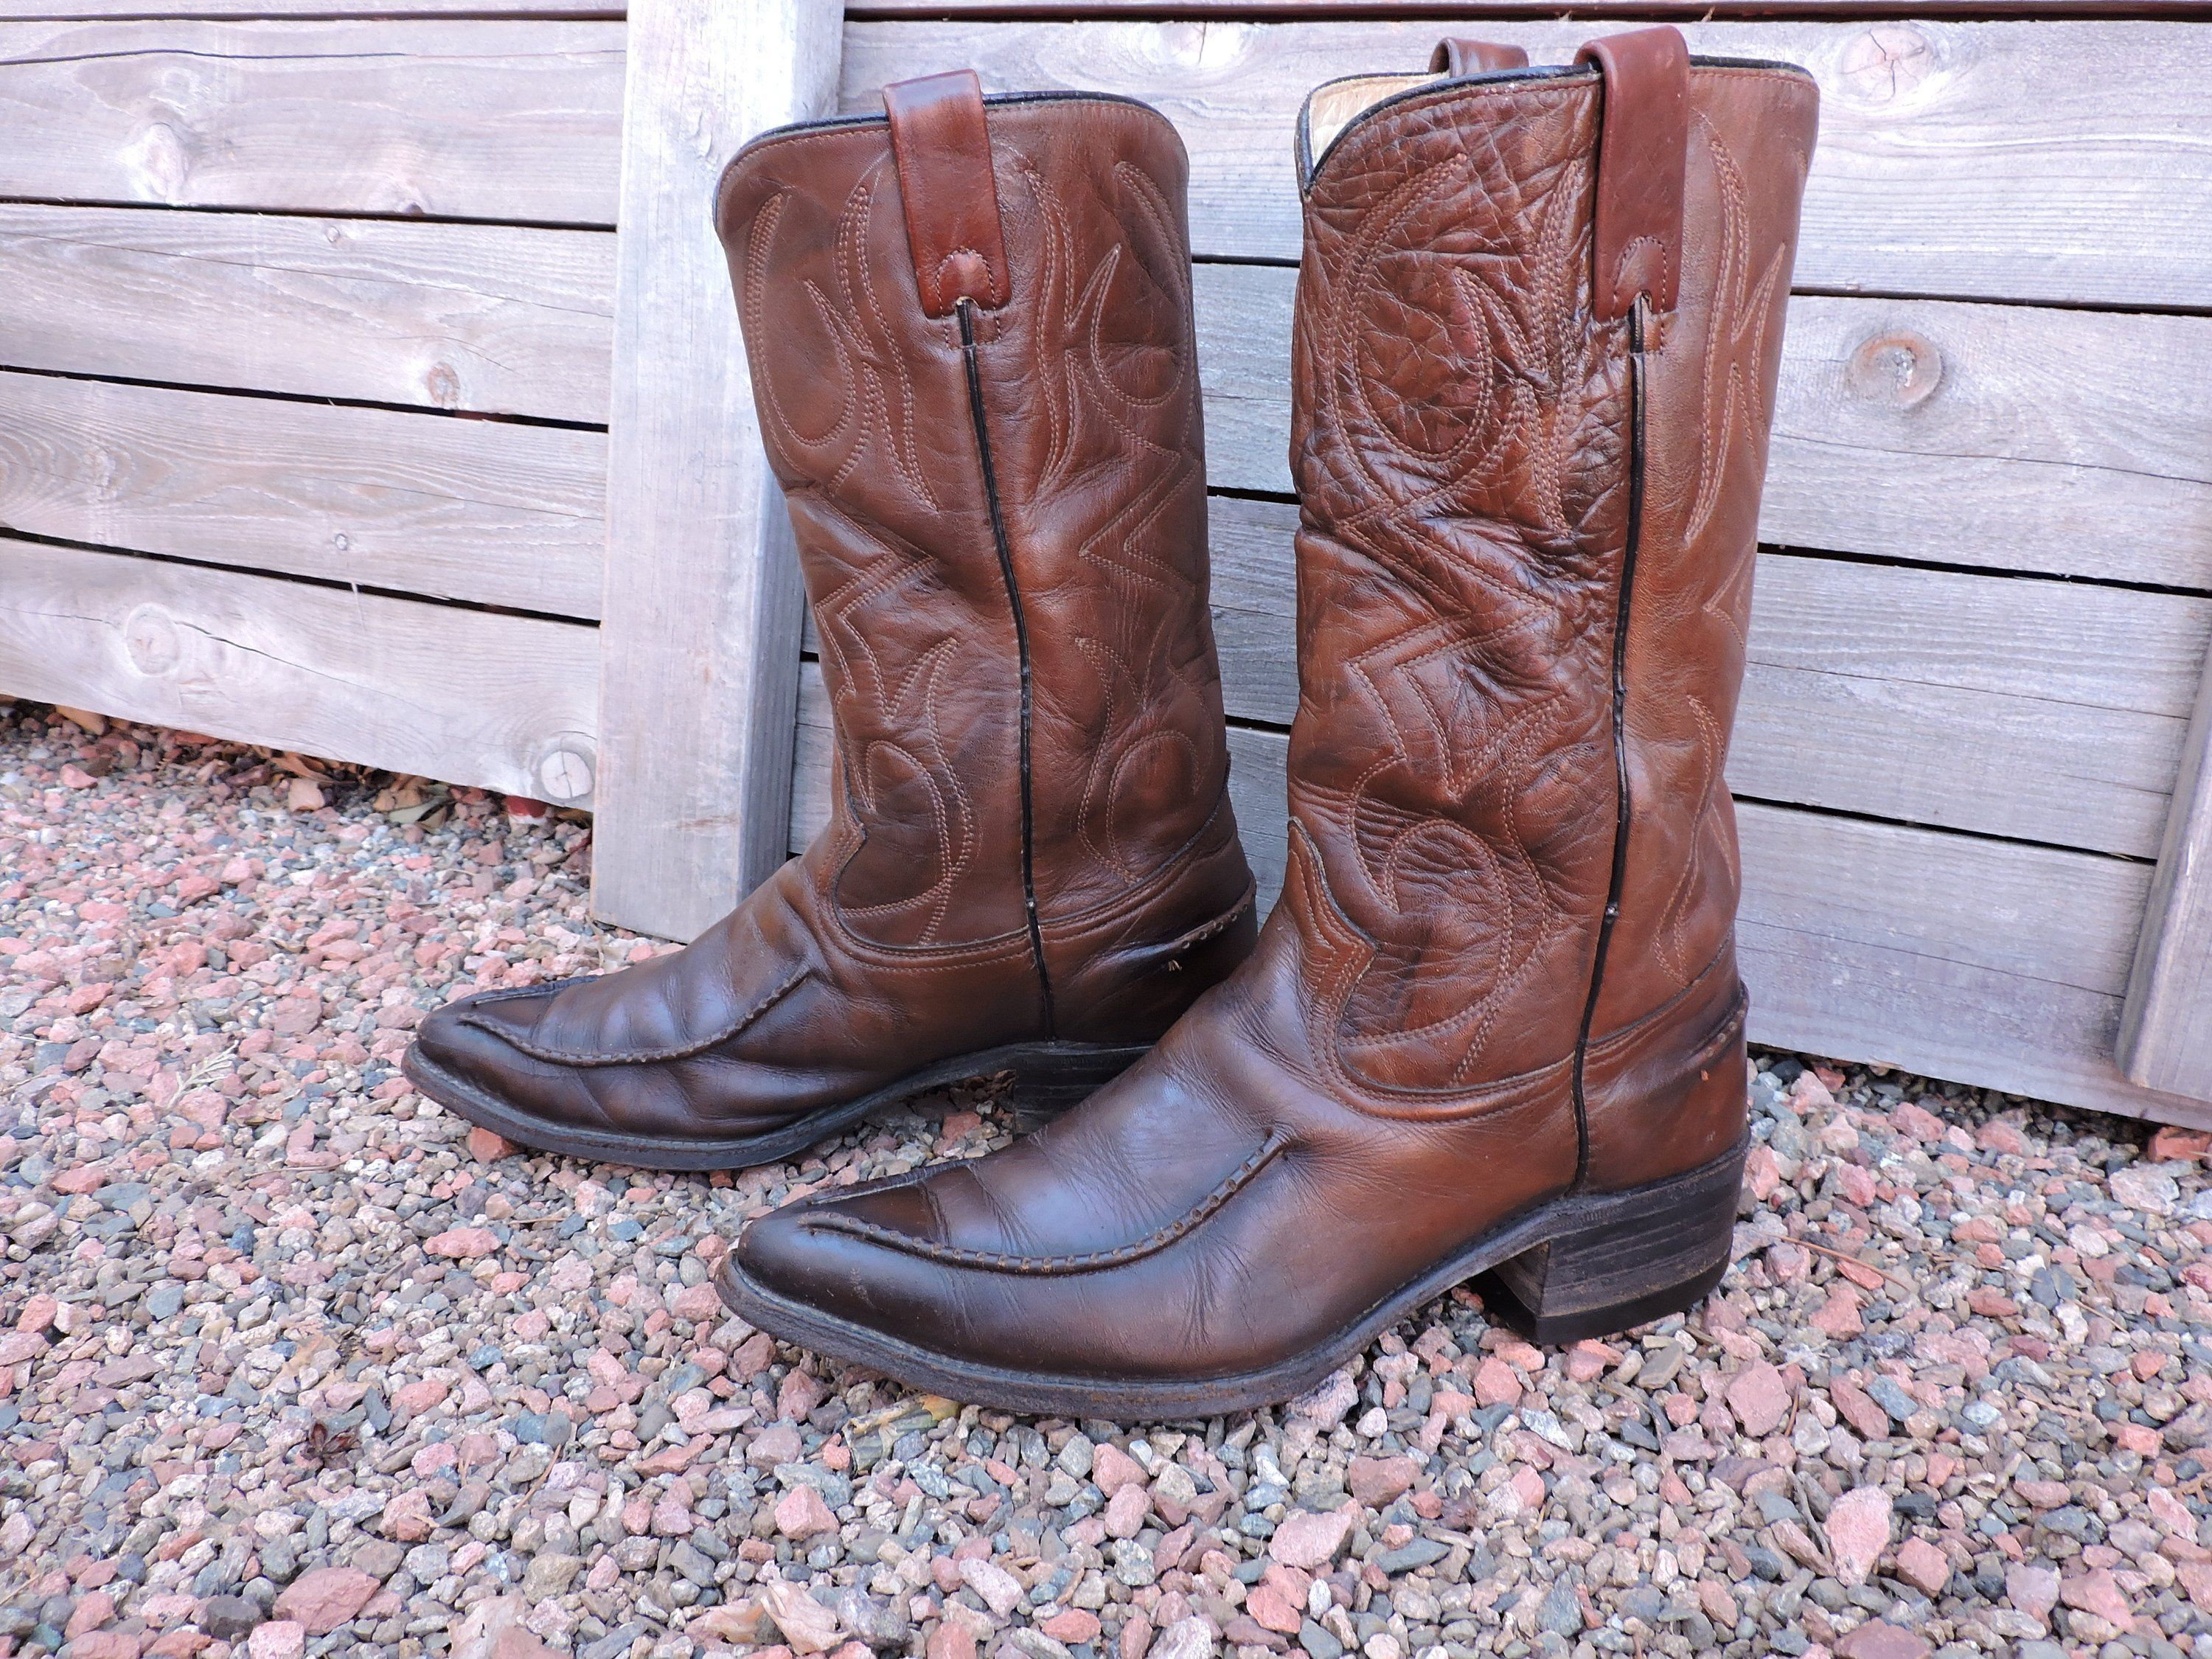 Vintage 60s Cowboy boots mens 9 EE Texas Imperial Boots